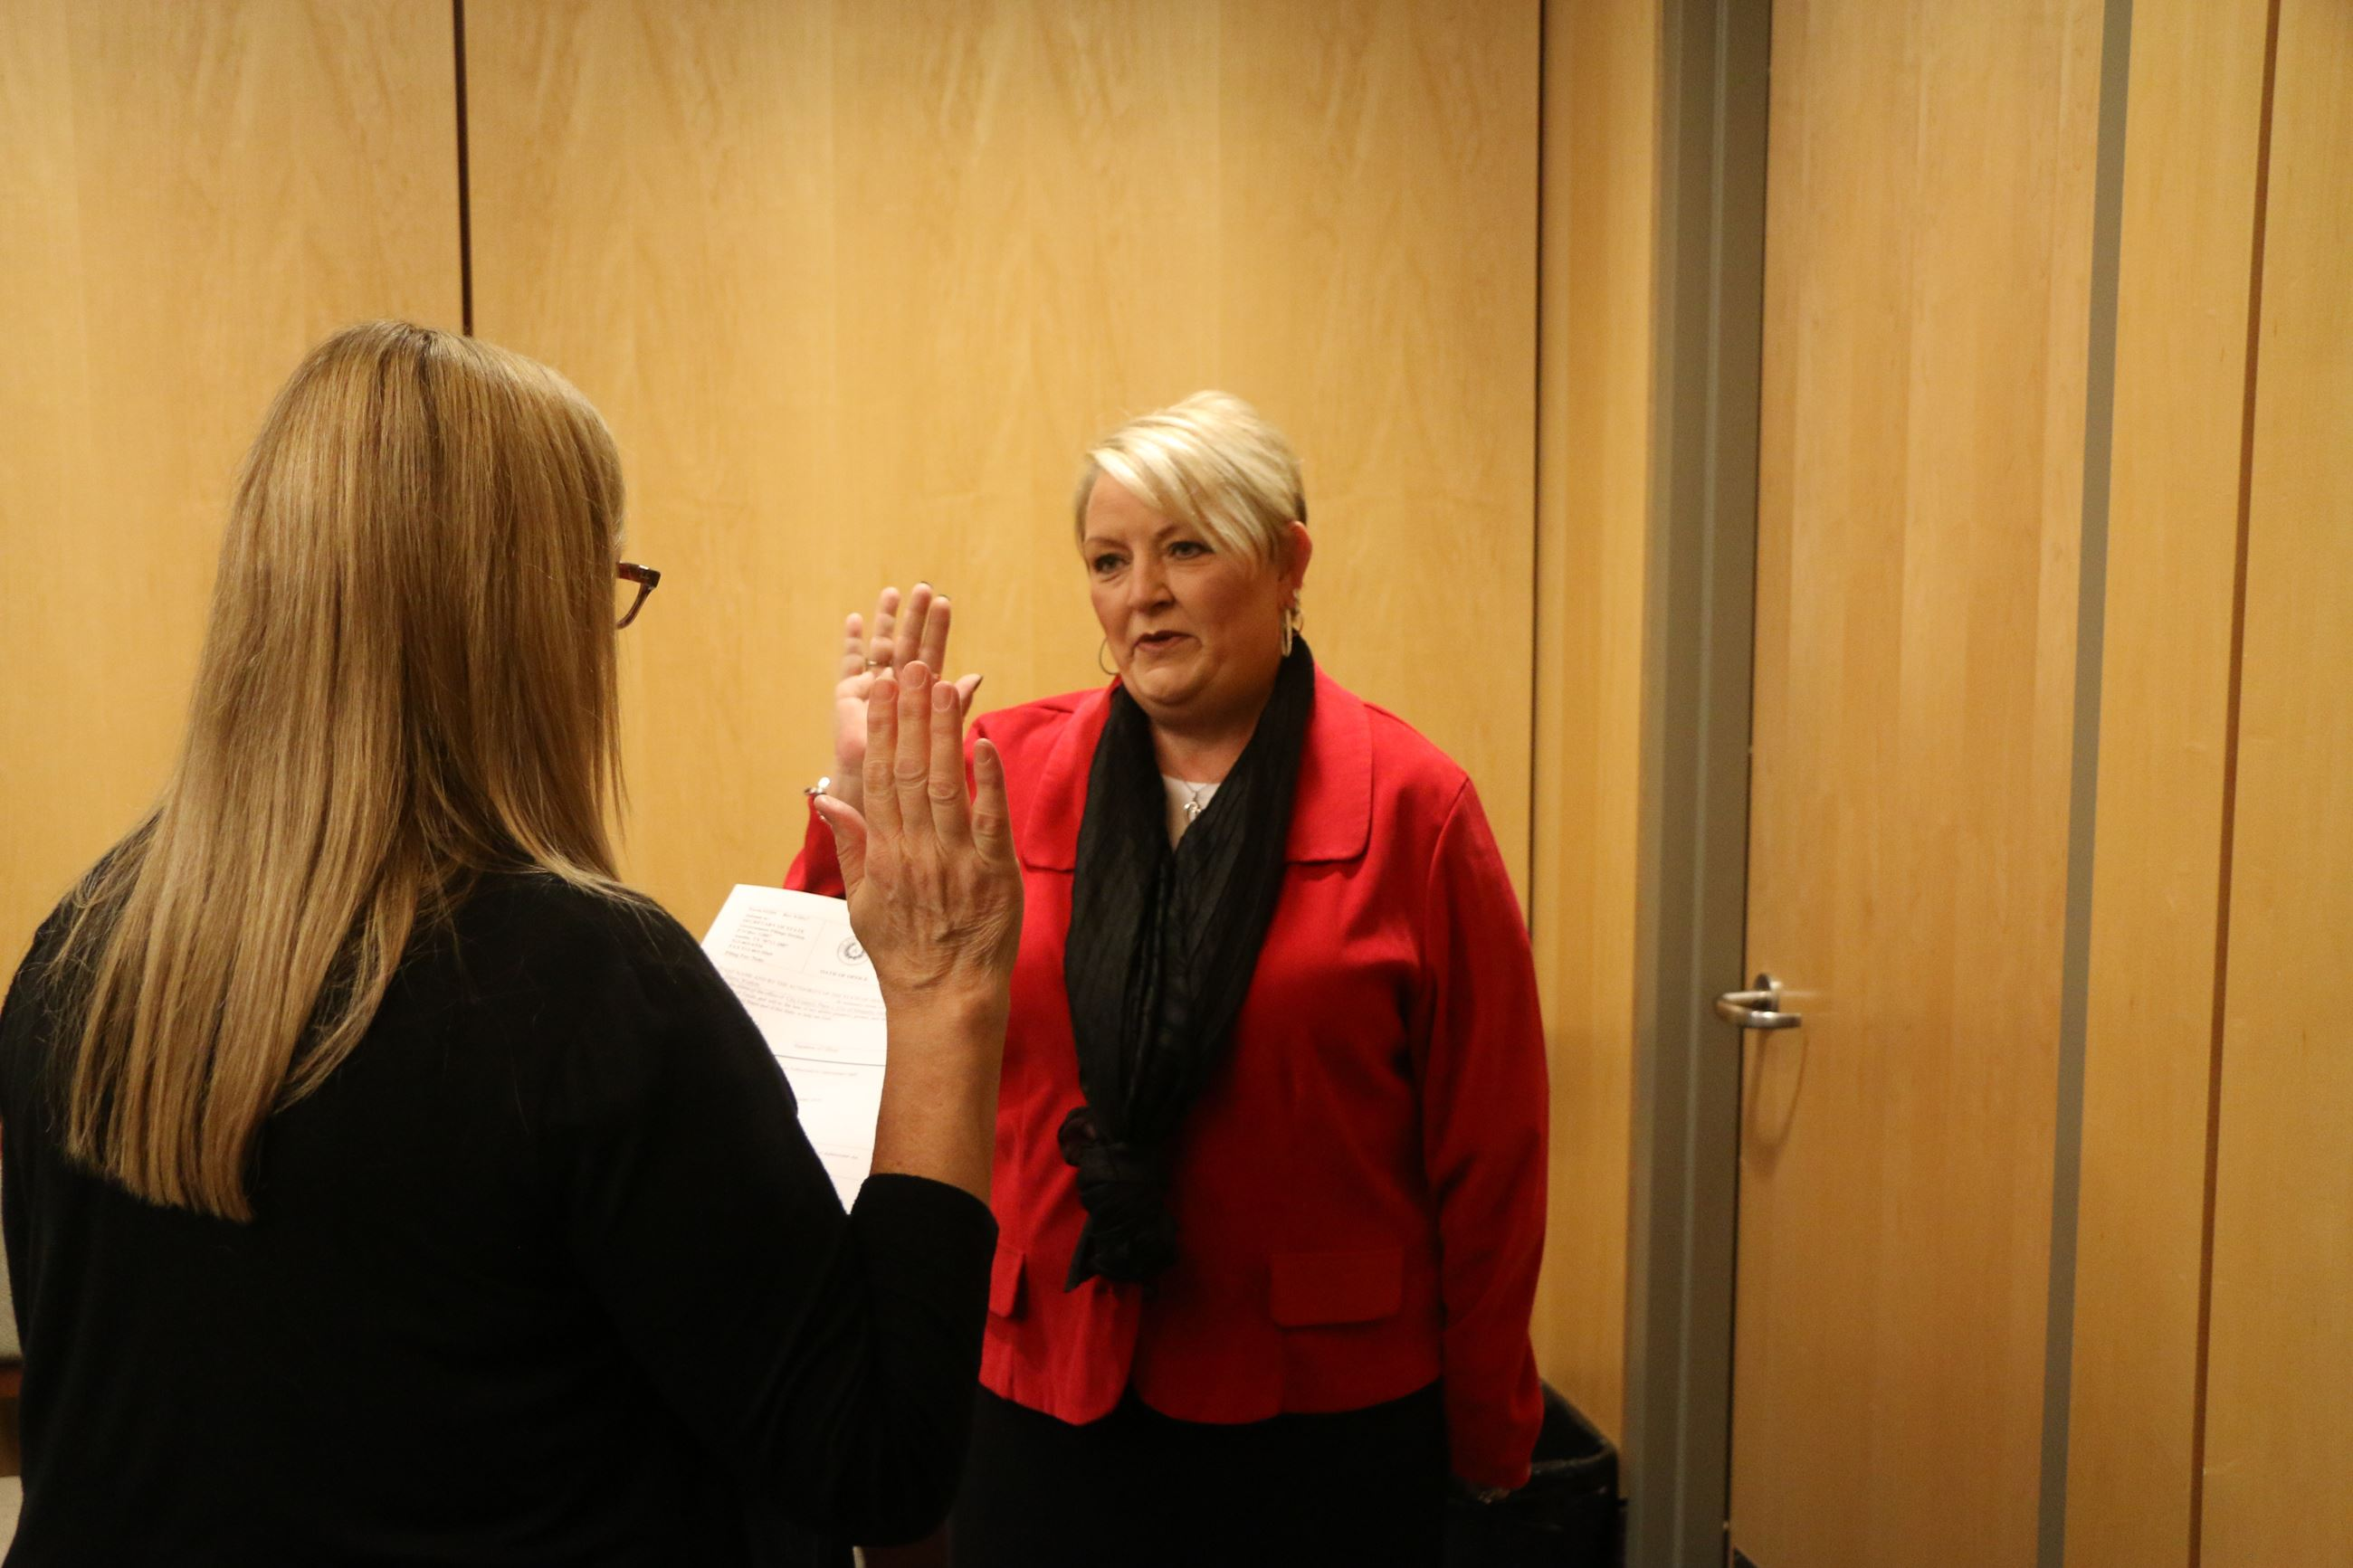 Sherry Wisdom takes oath of office 12/26/2019